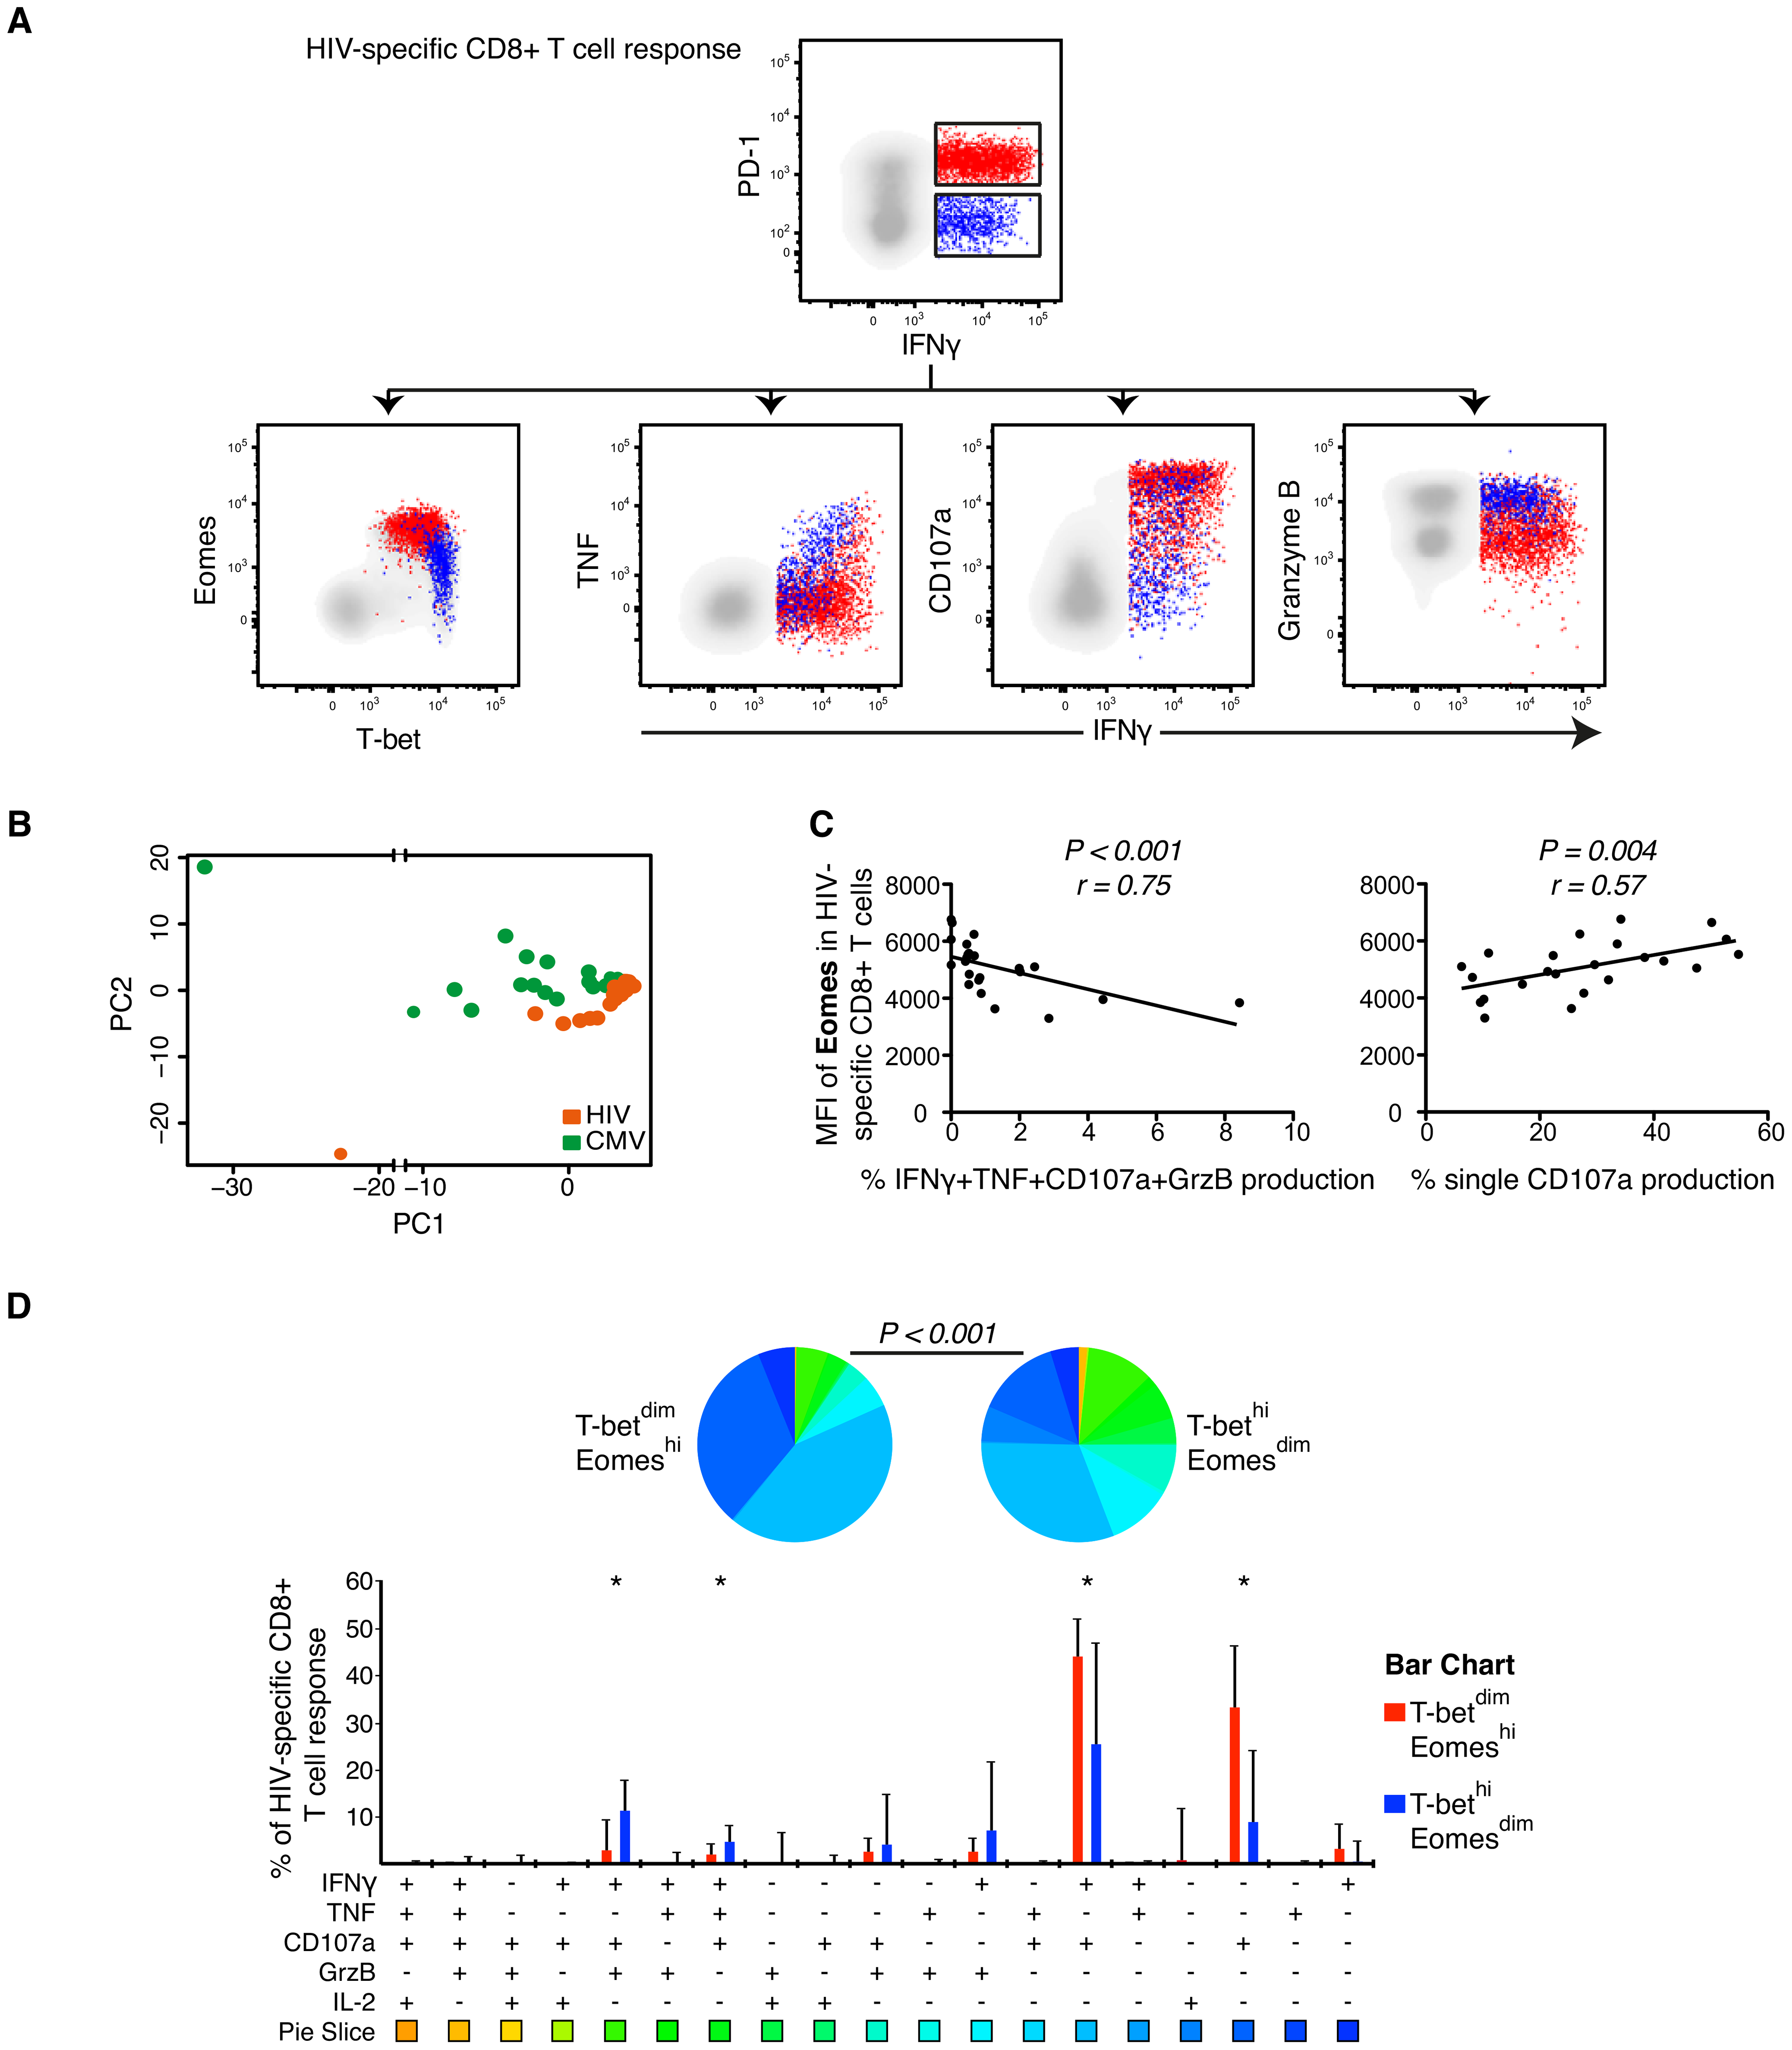 Polyfunctional characterization of virus-specific CD8+ T cells in untreated HIV-infected individuals.